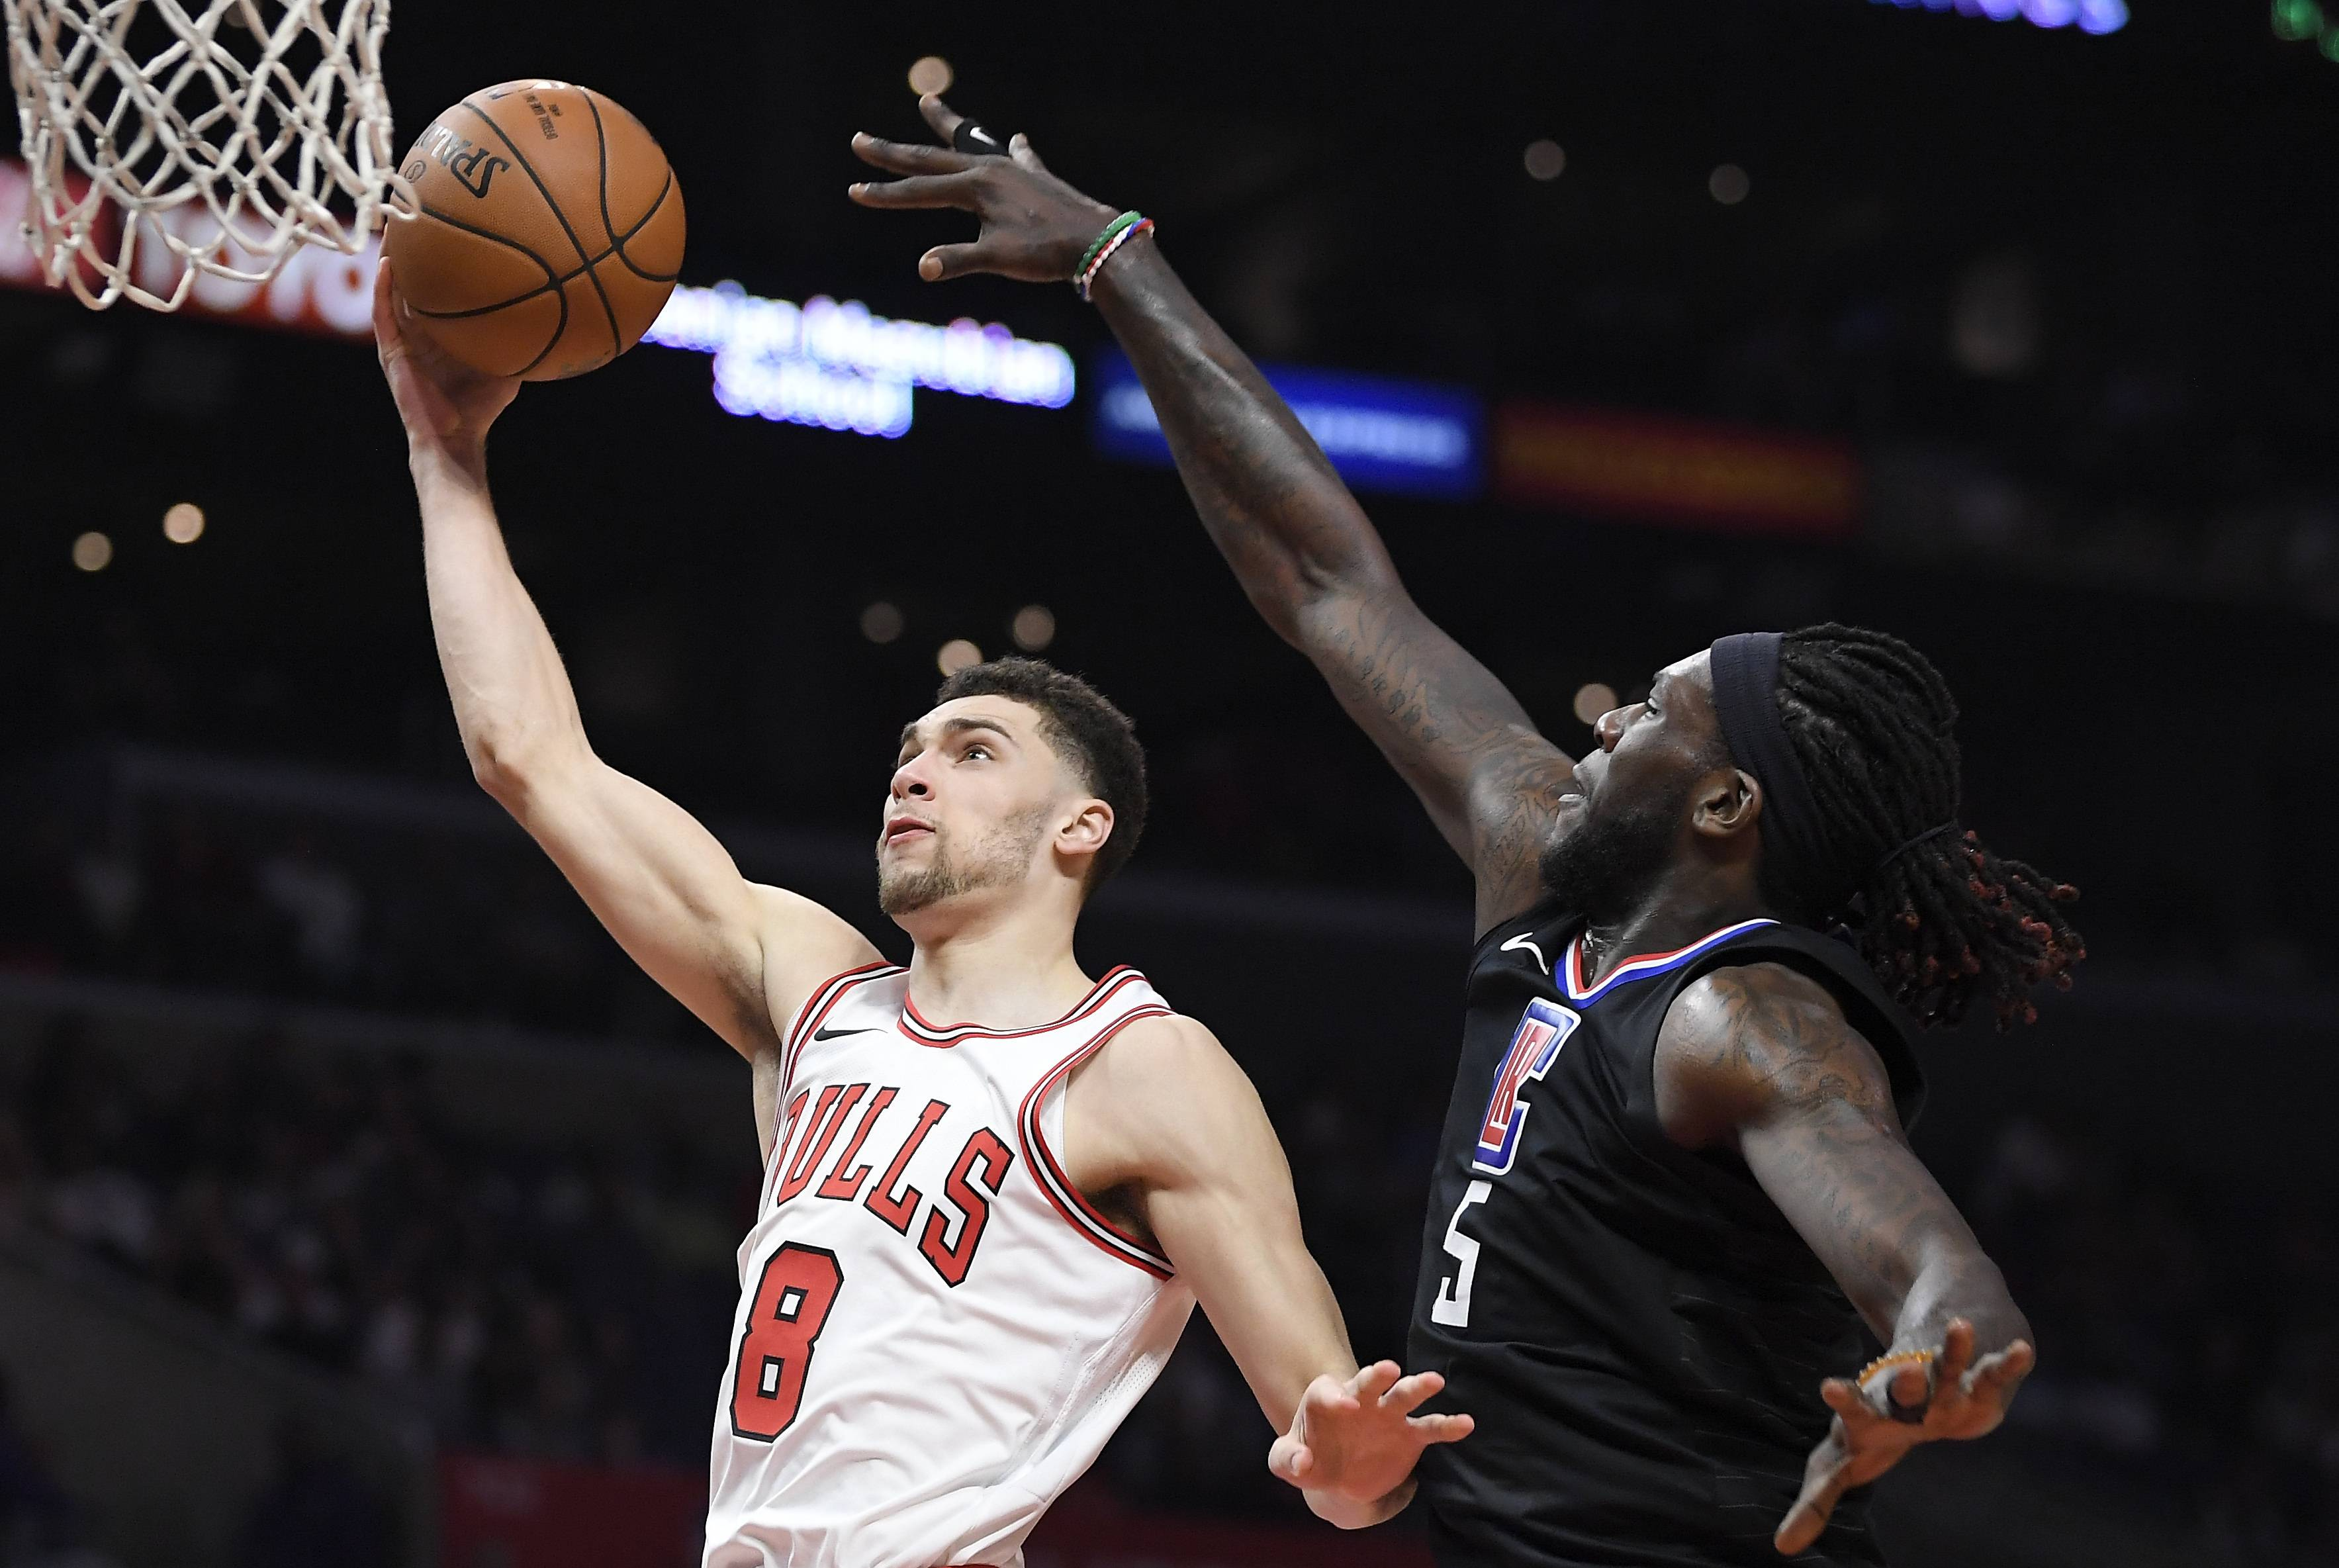 All eyes will be on Jimmy Butler and Taj Gibson when they visit with Minnesota on Friday. But this game will also feature Bulls guard Zach LaVine playing against his former team for the first time.